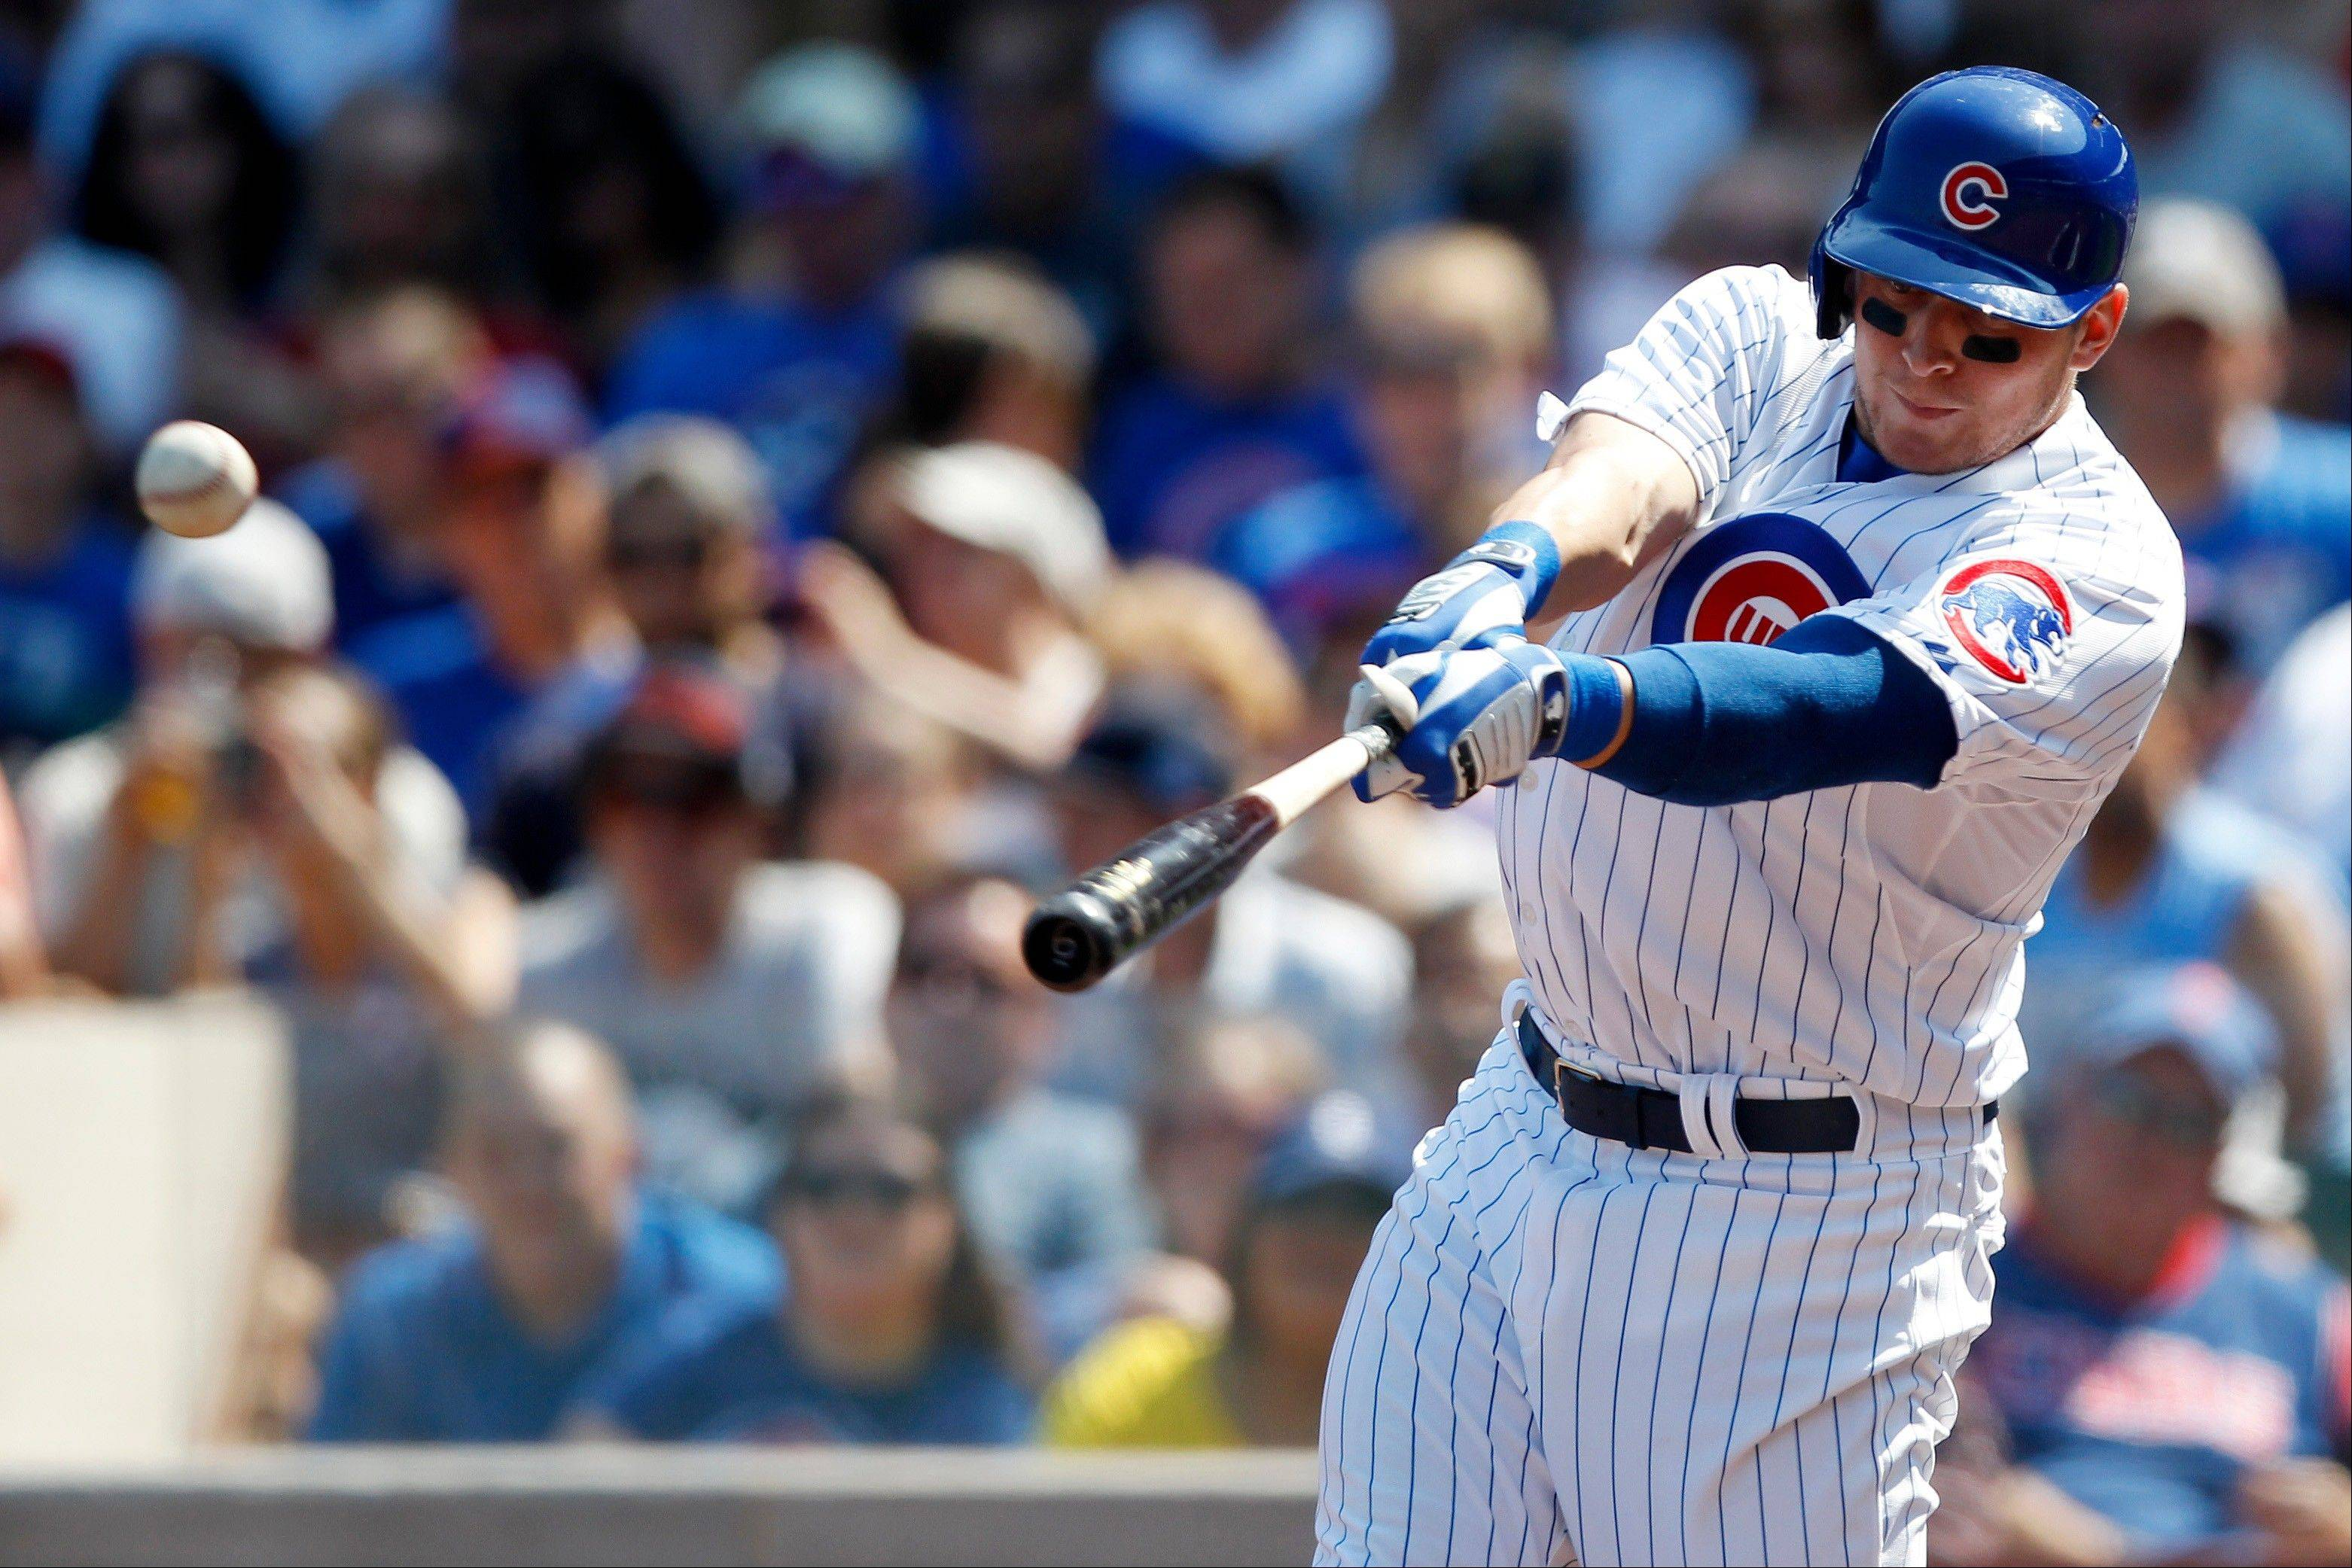 Chicago Cubs' Ryan Sweeney hits a single against the Philadelphia Phillies during the first inning of a baseball game on Sunday, Sept. 1, 2013, in Chicago.